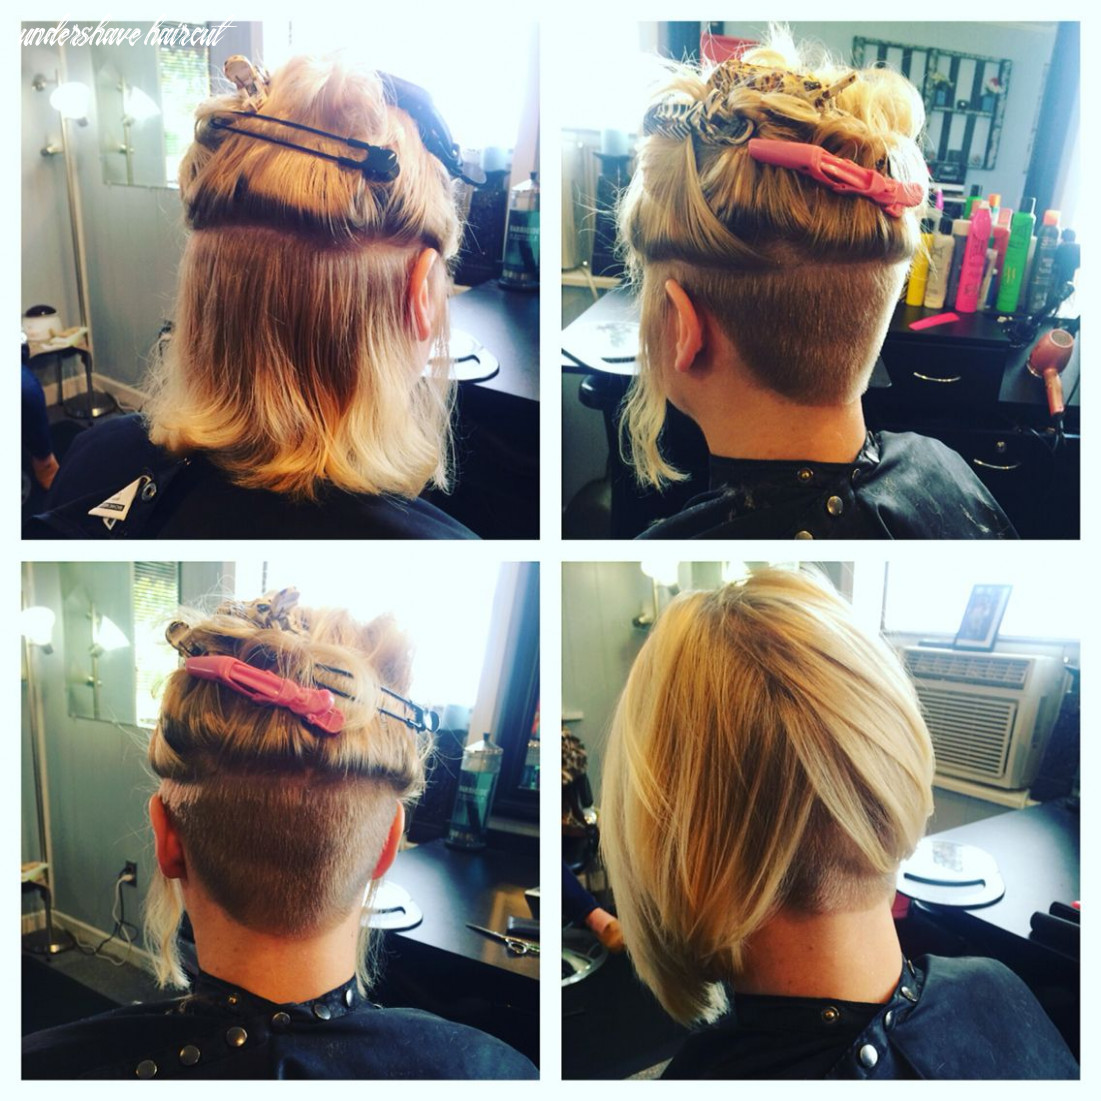 Undershave bob (with images) | undercut hairstyles, hair styles